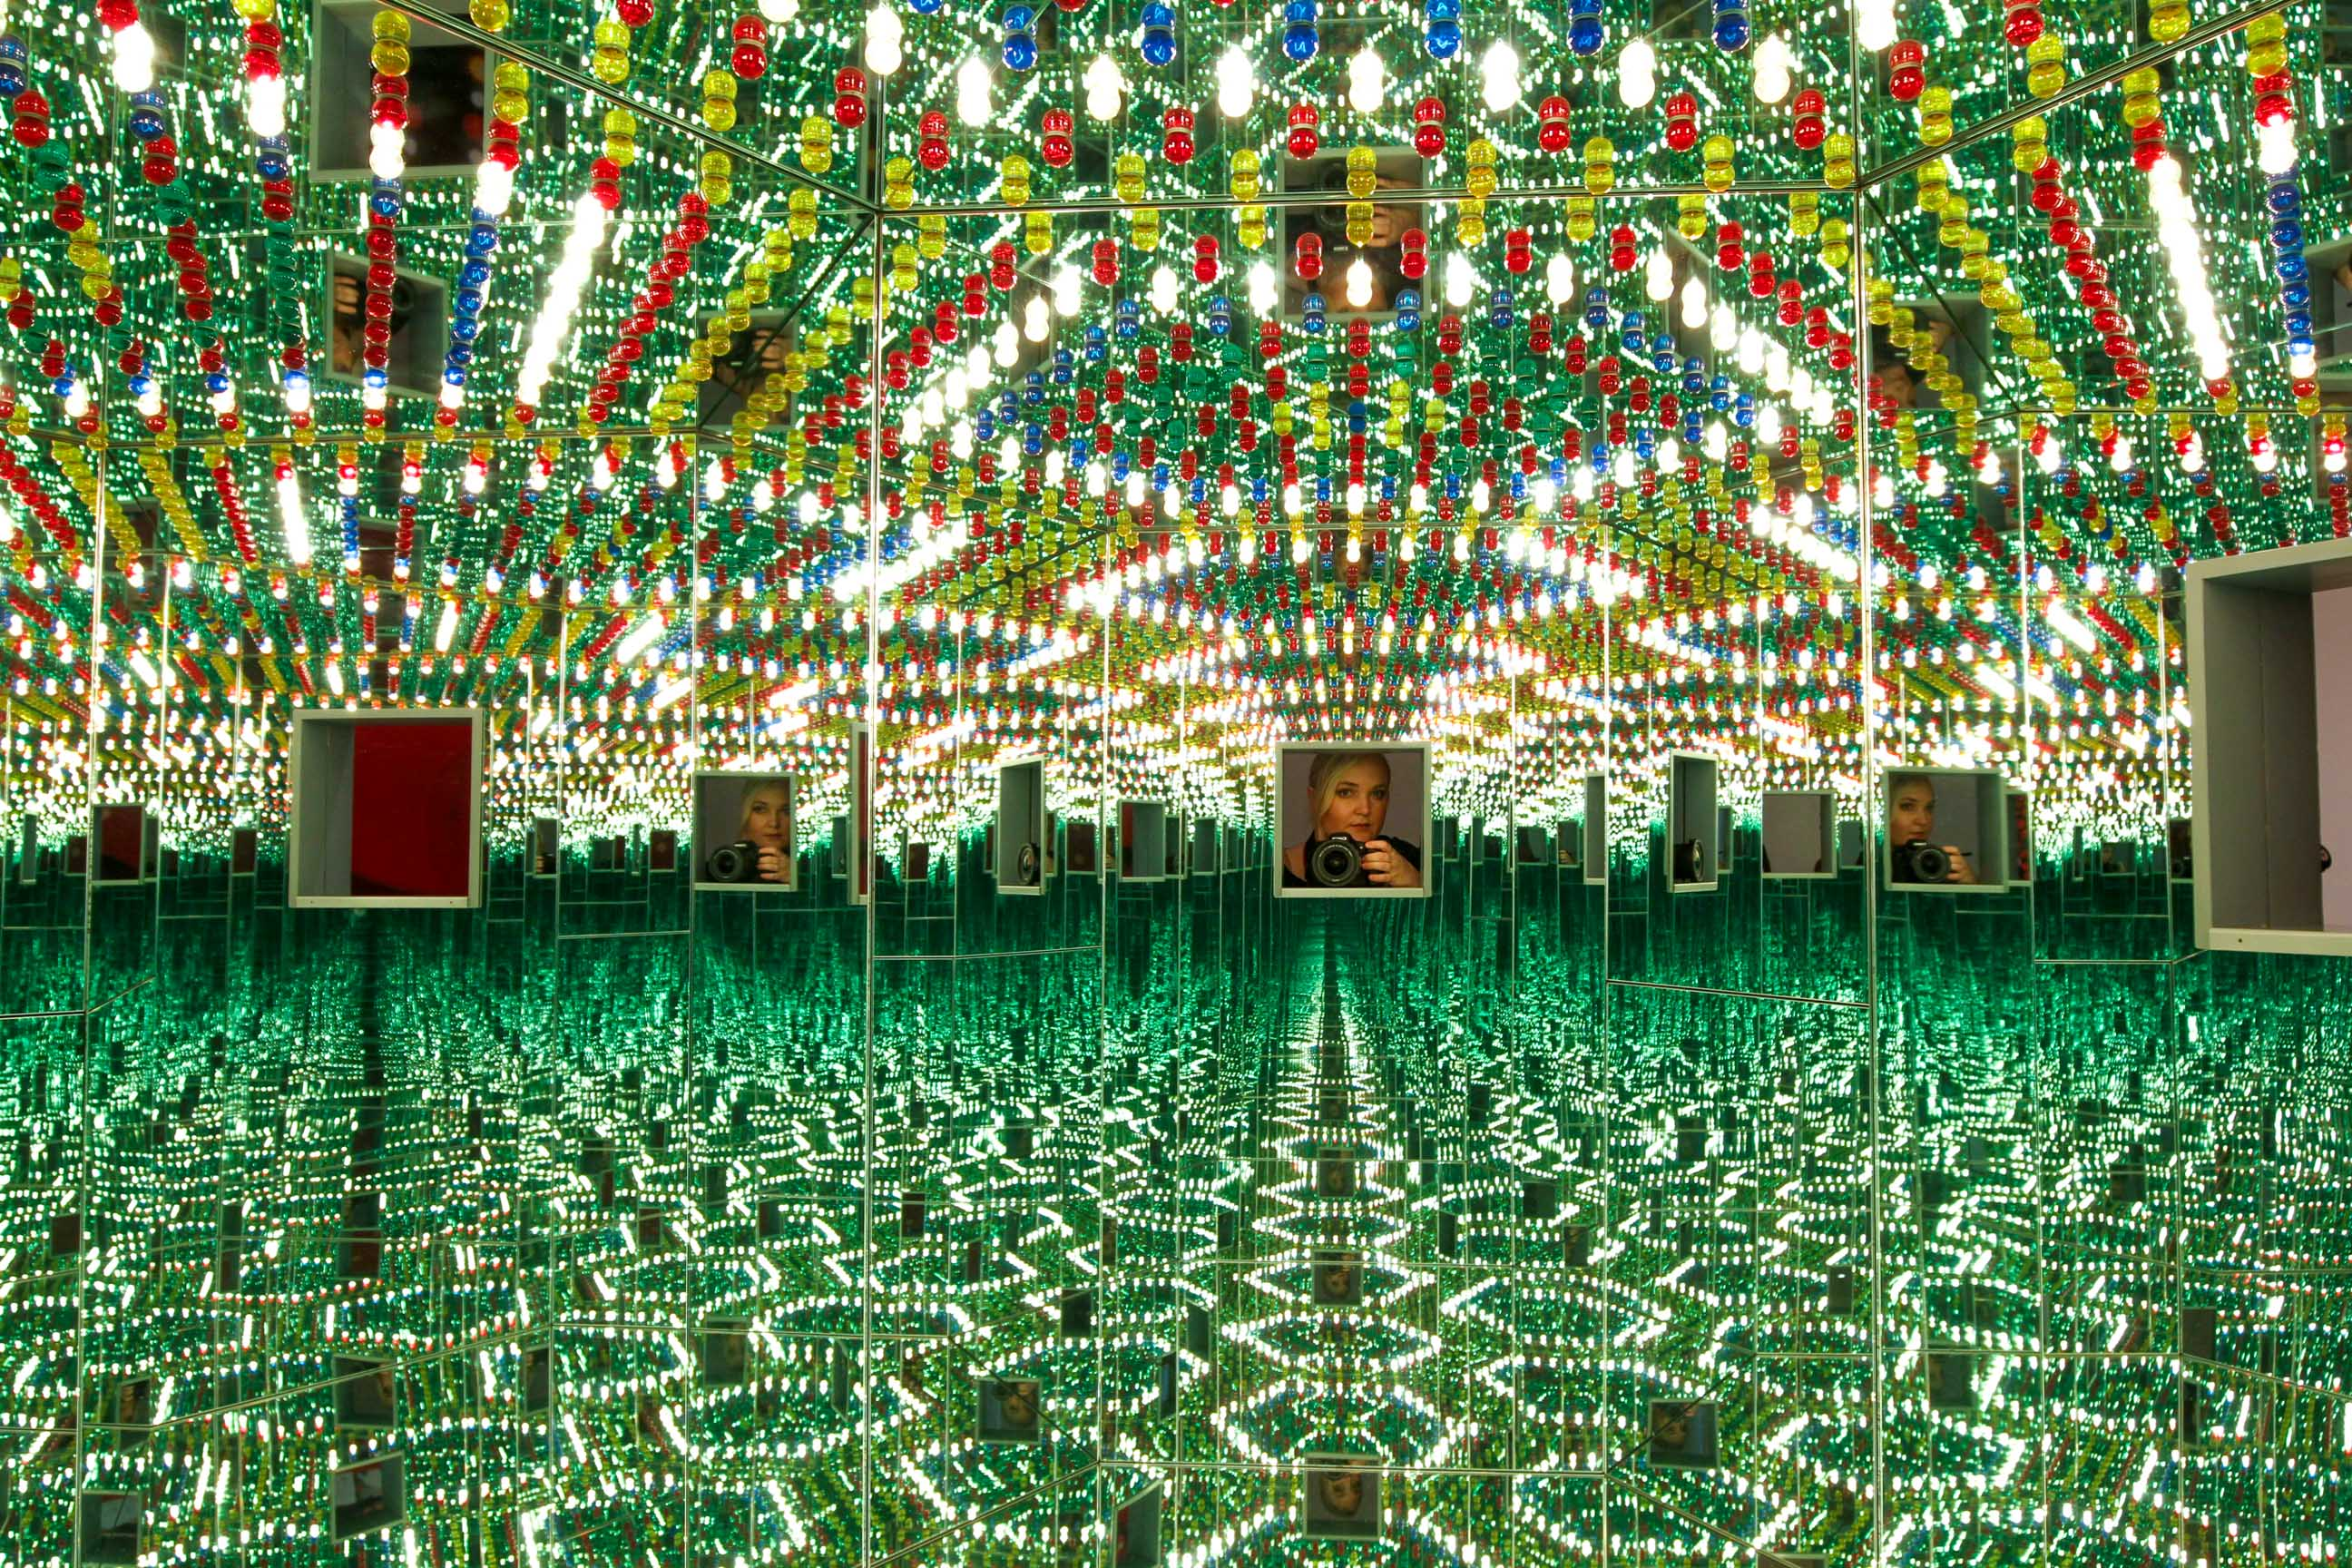 Insider Tips for Making the Most Out of Kusama Infinity Mirrors Exhibit